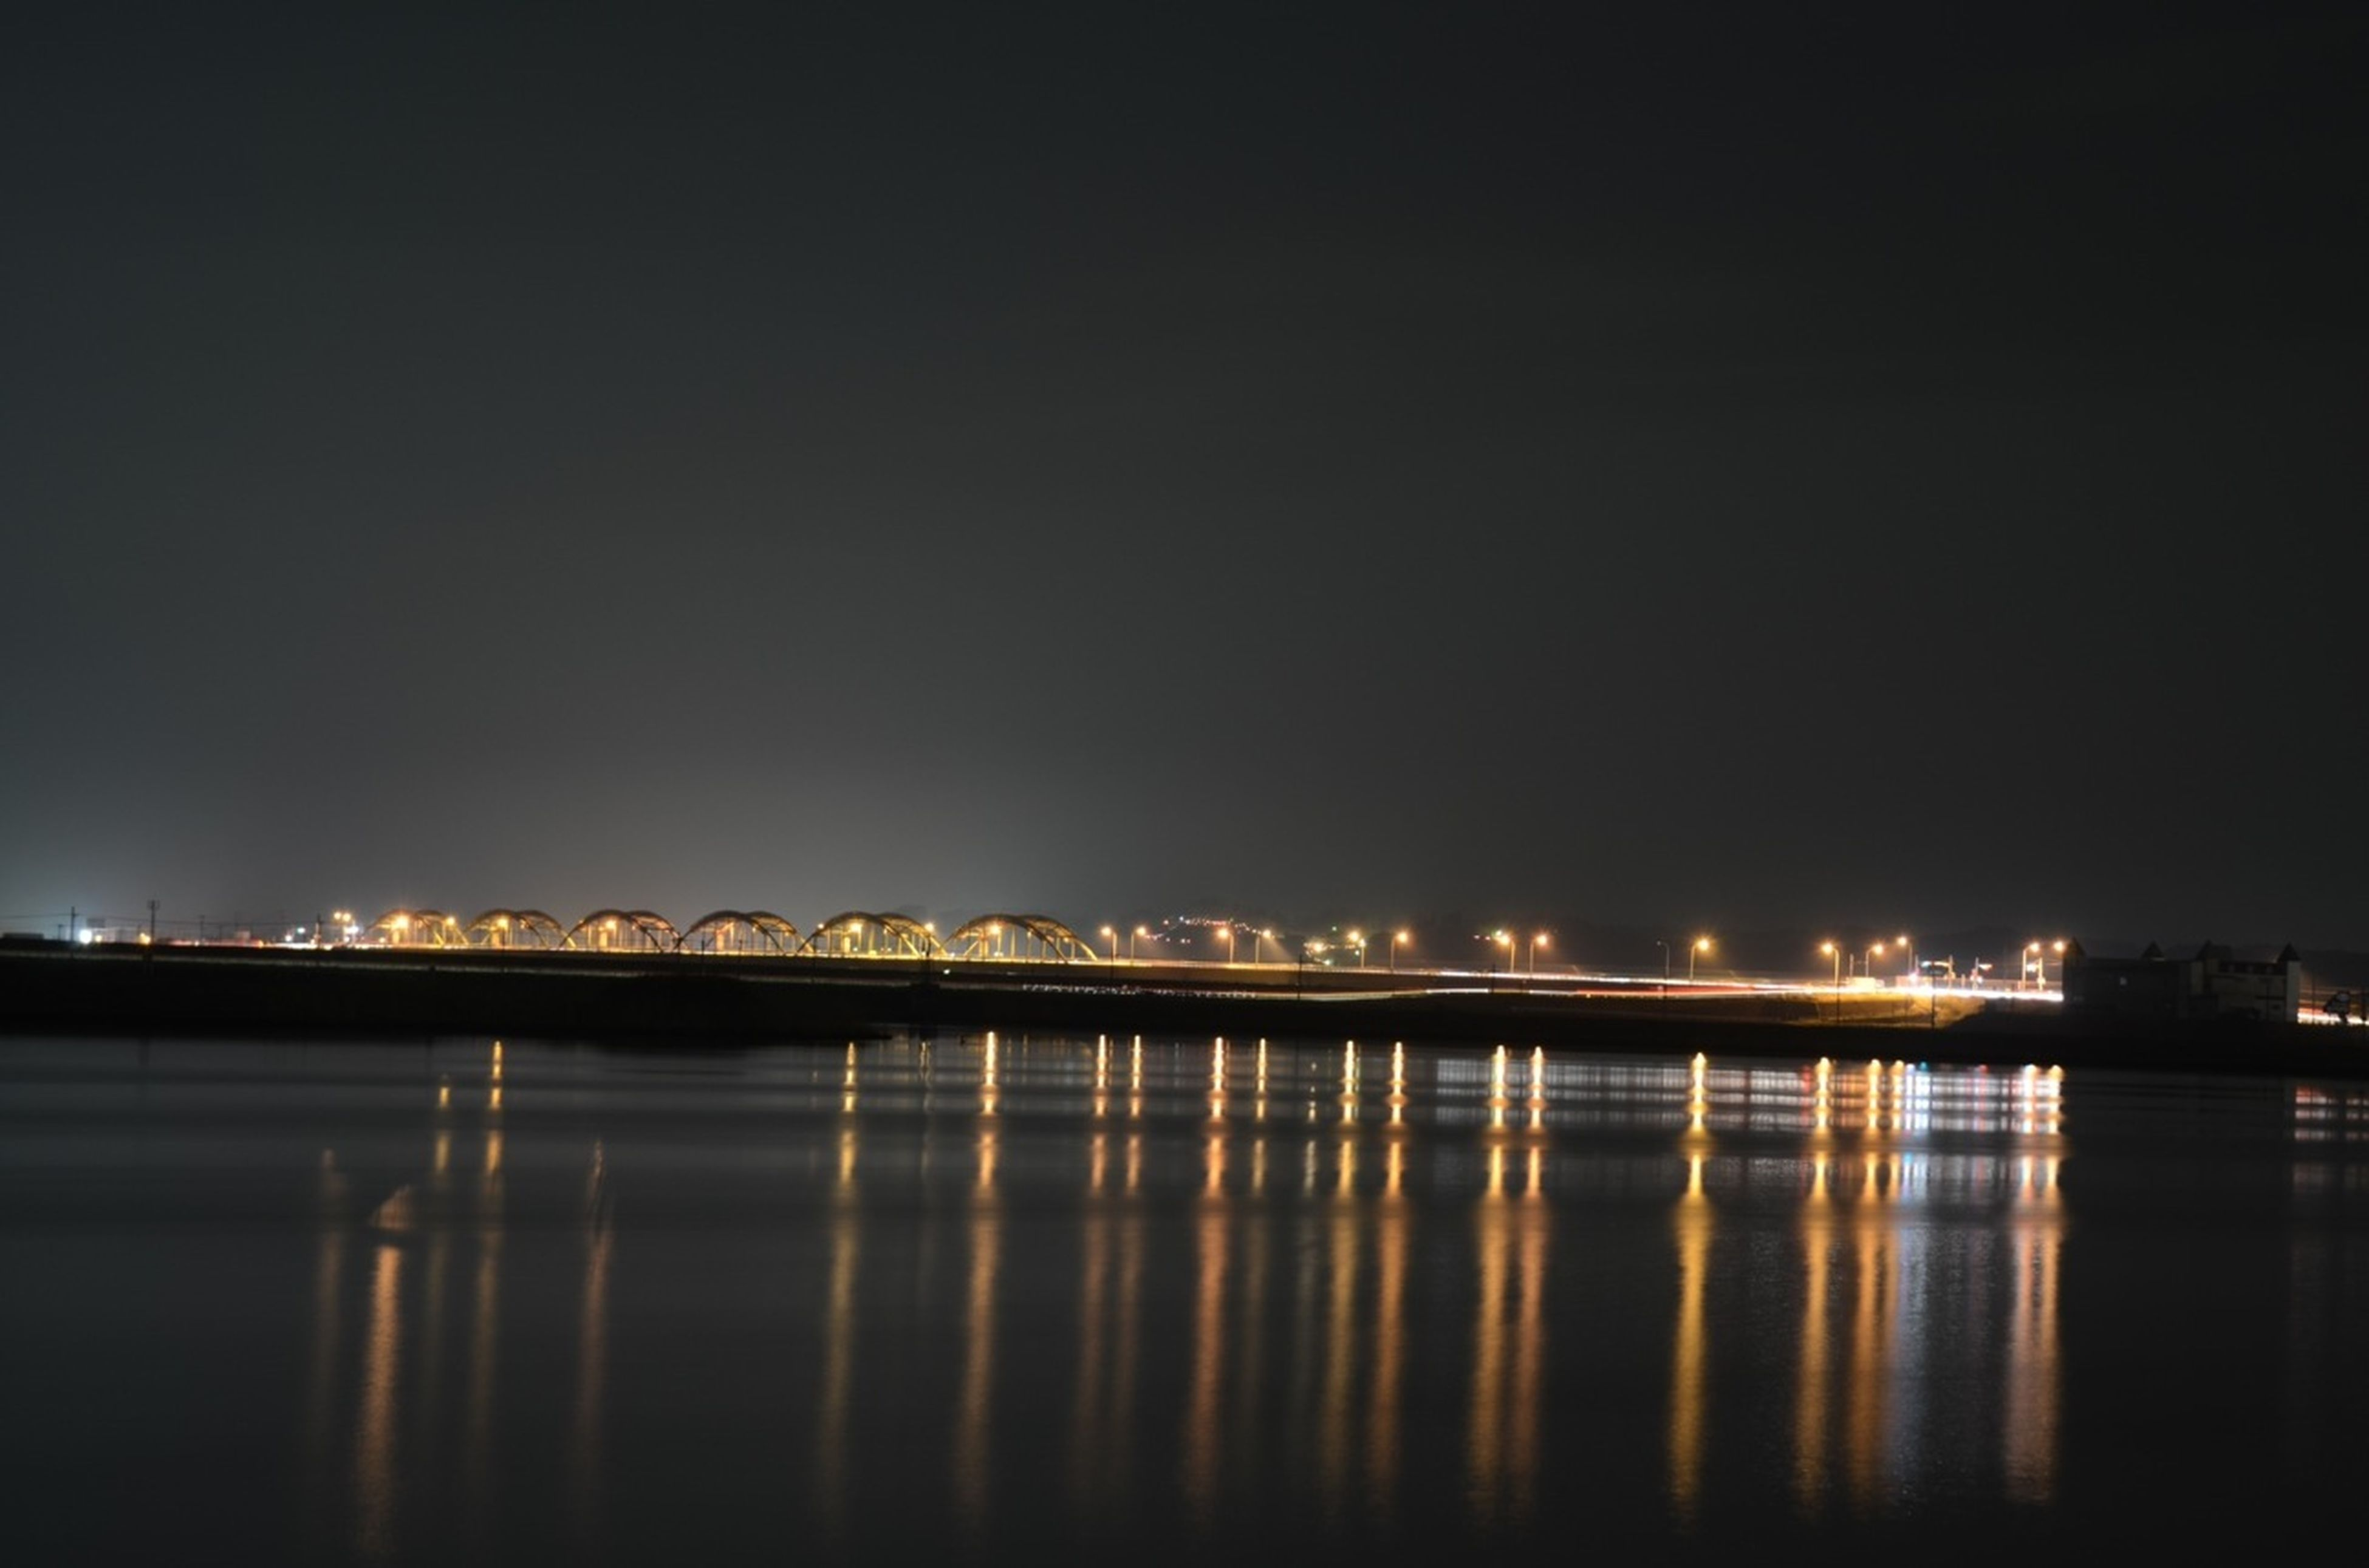 illuminated, night, water, waterfront, reflection, copy space, clear sky, built structure, architecture, river, sea, city, sky, tranquil scene, tranquility, building exterior, light, scenics, connection, bridge - man made structure